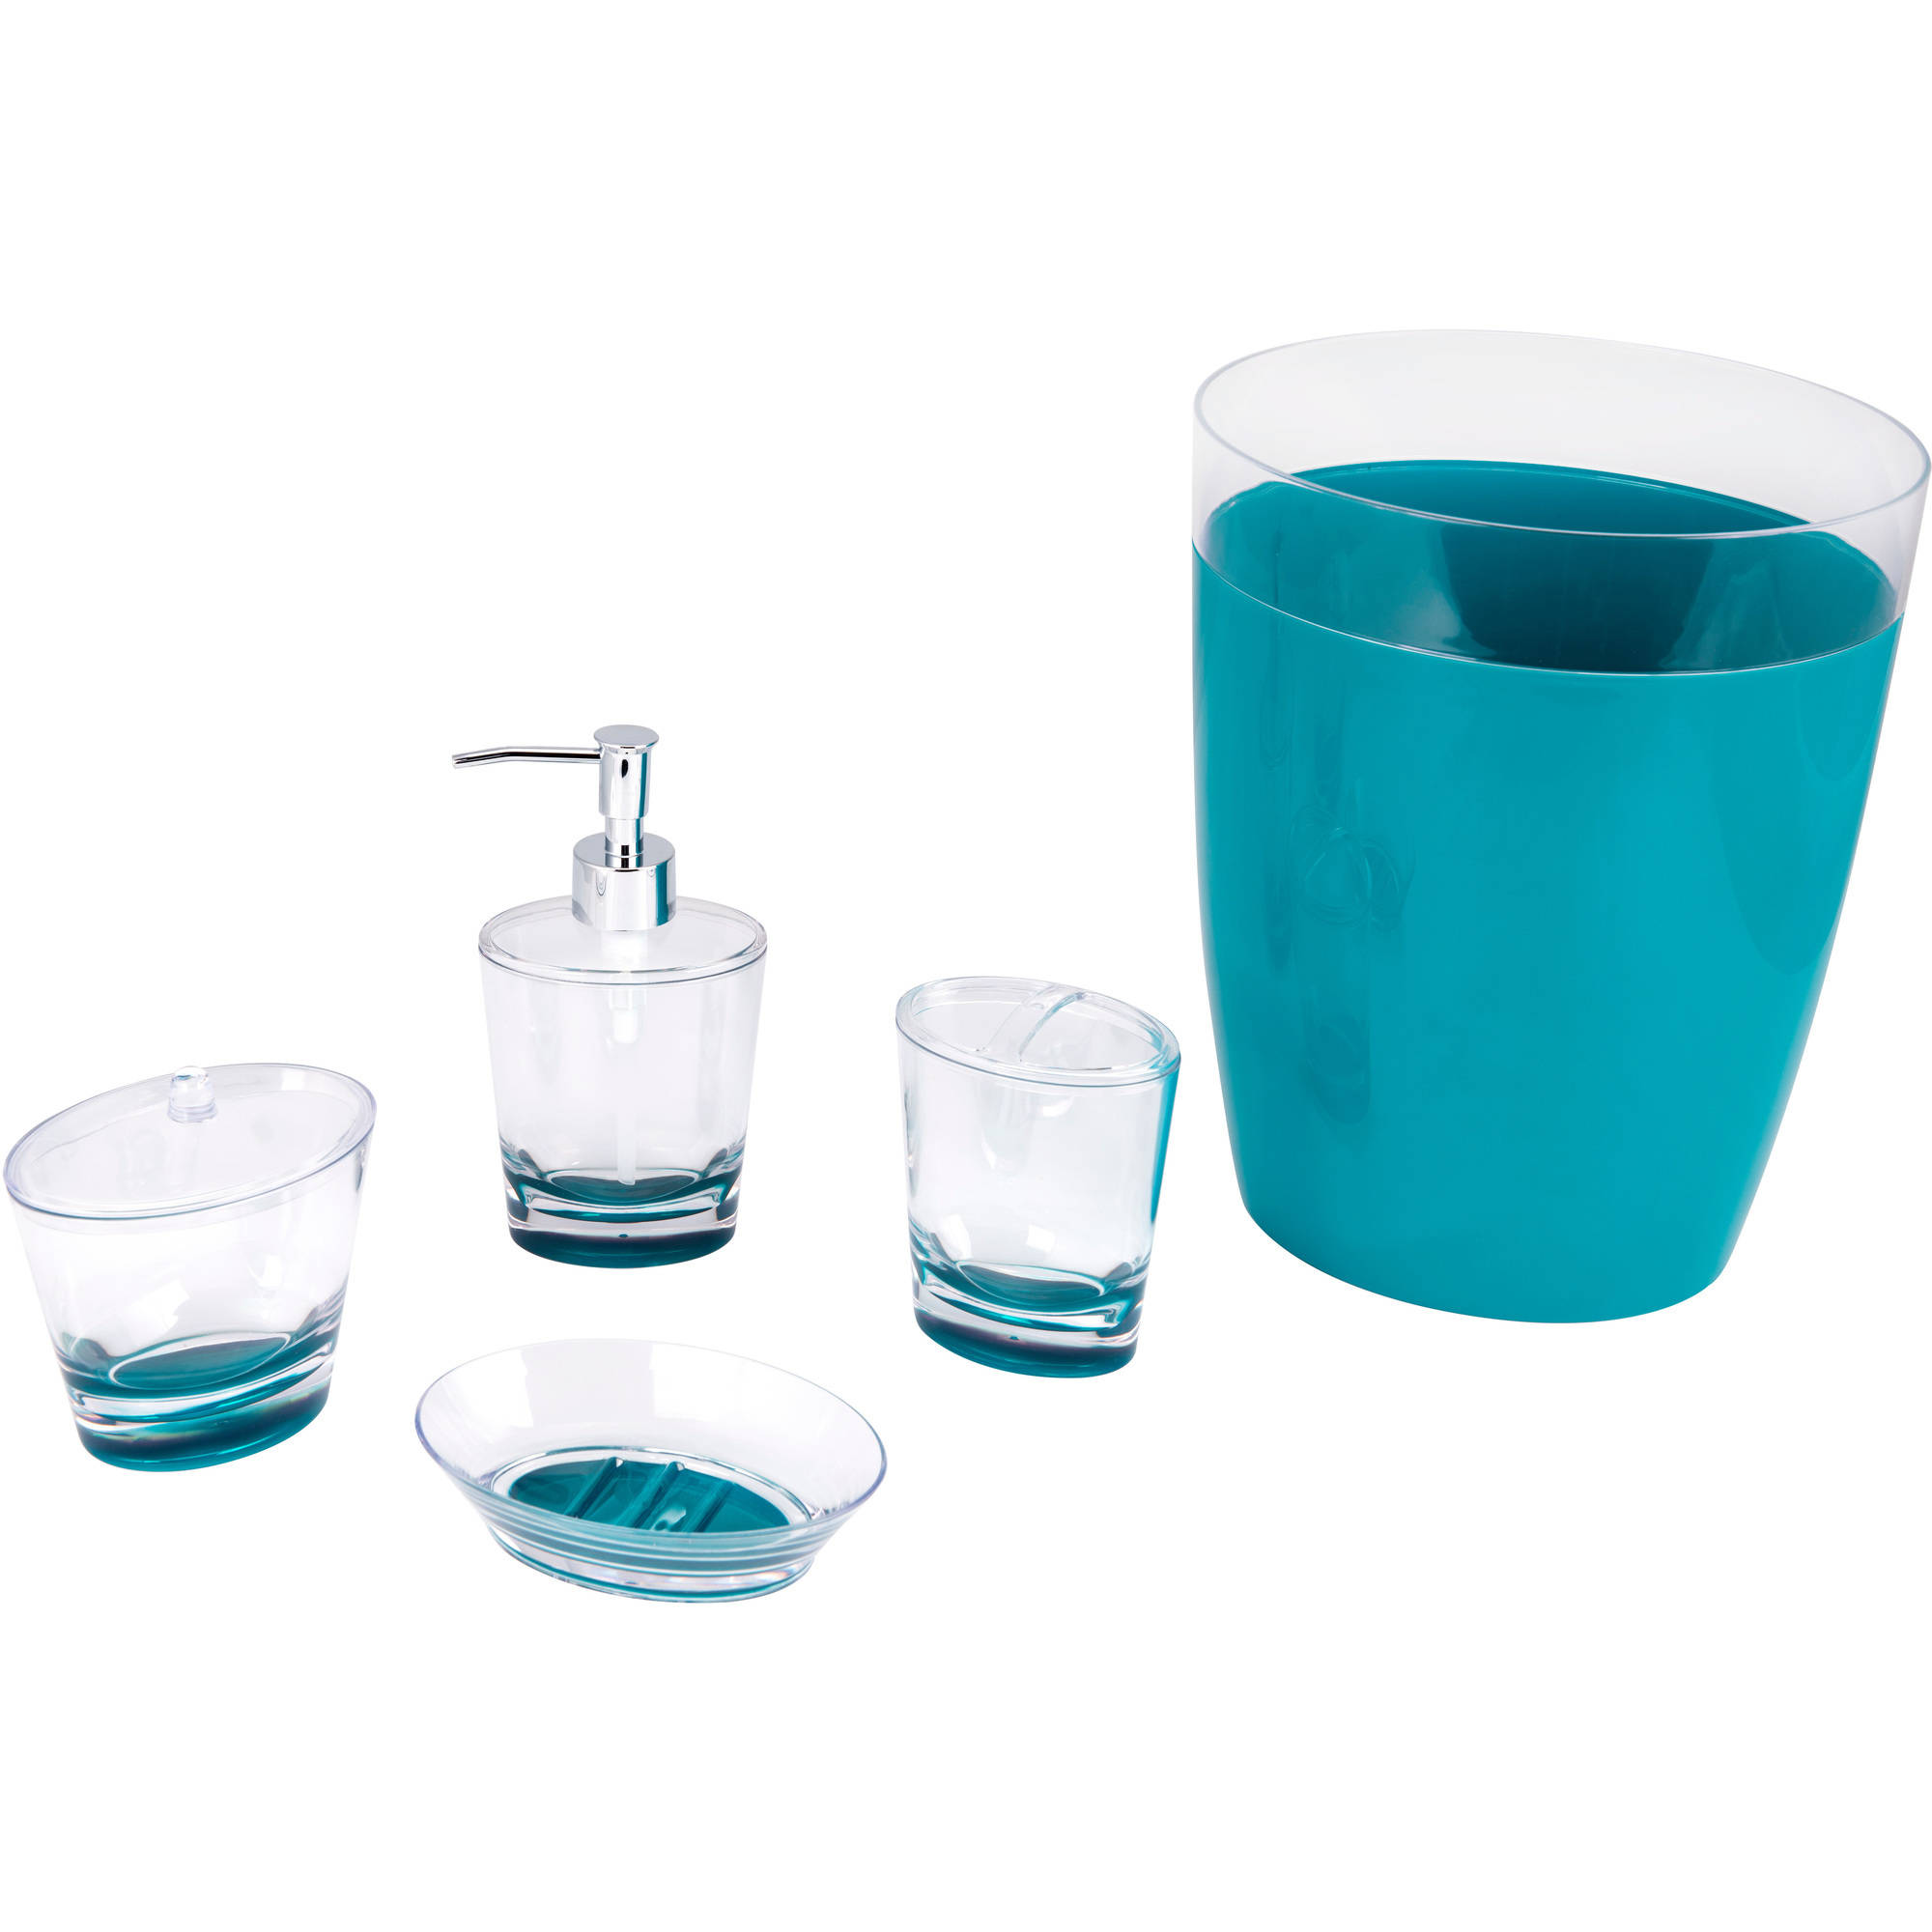 Aqua colored bathroom accessories my web value for Aqua colored bathroom accessories